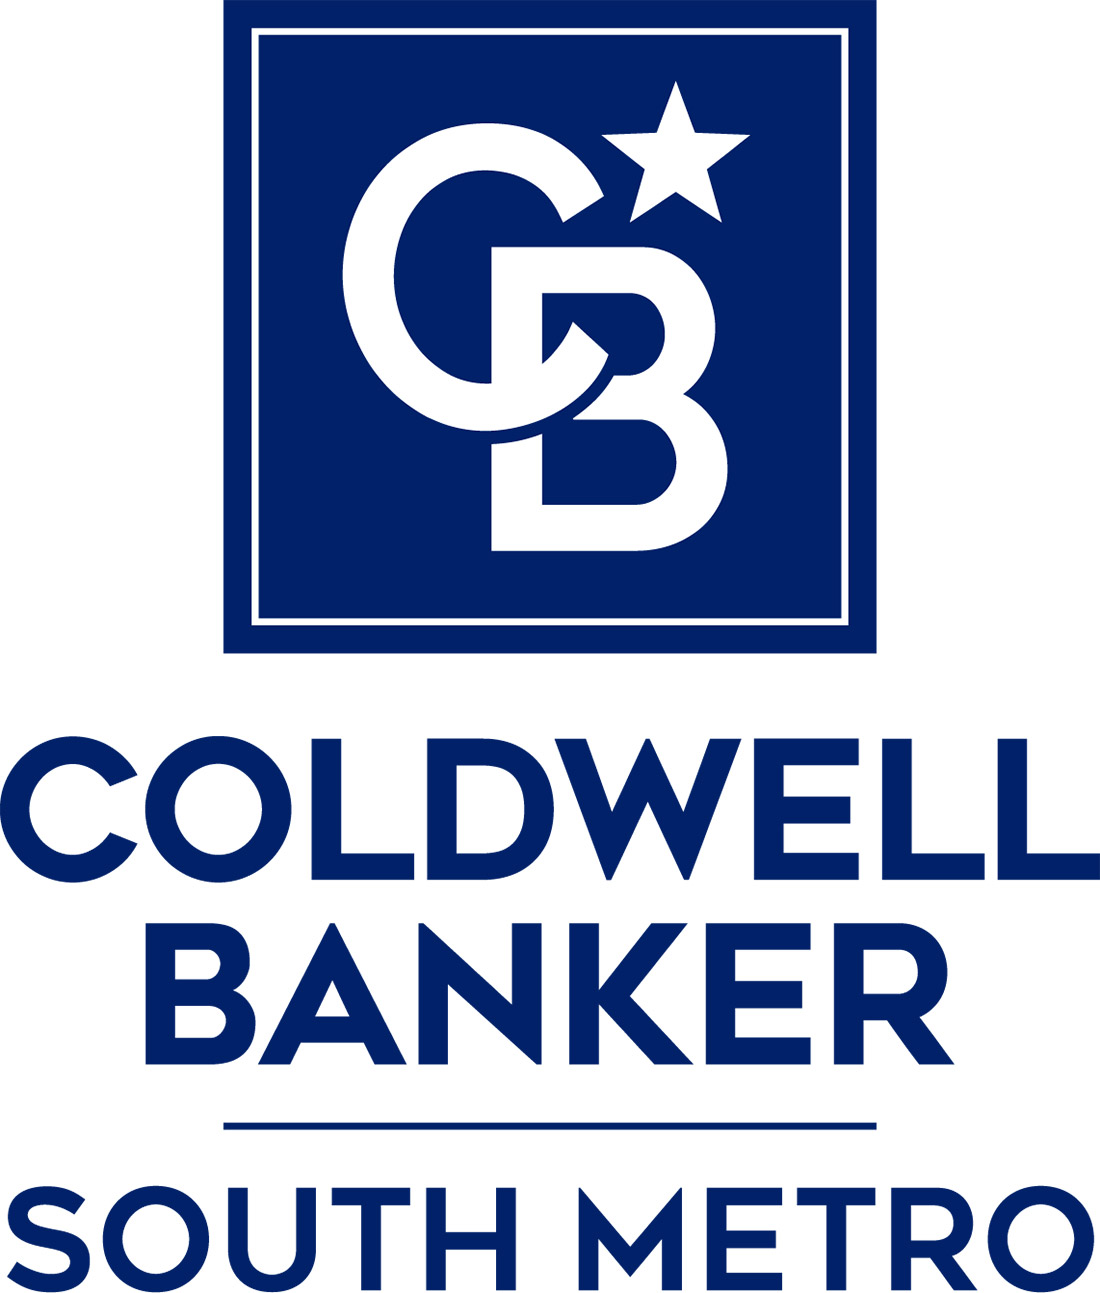 Debra Zellner - Coldwell Banker South Metro Logo